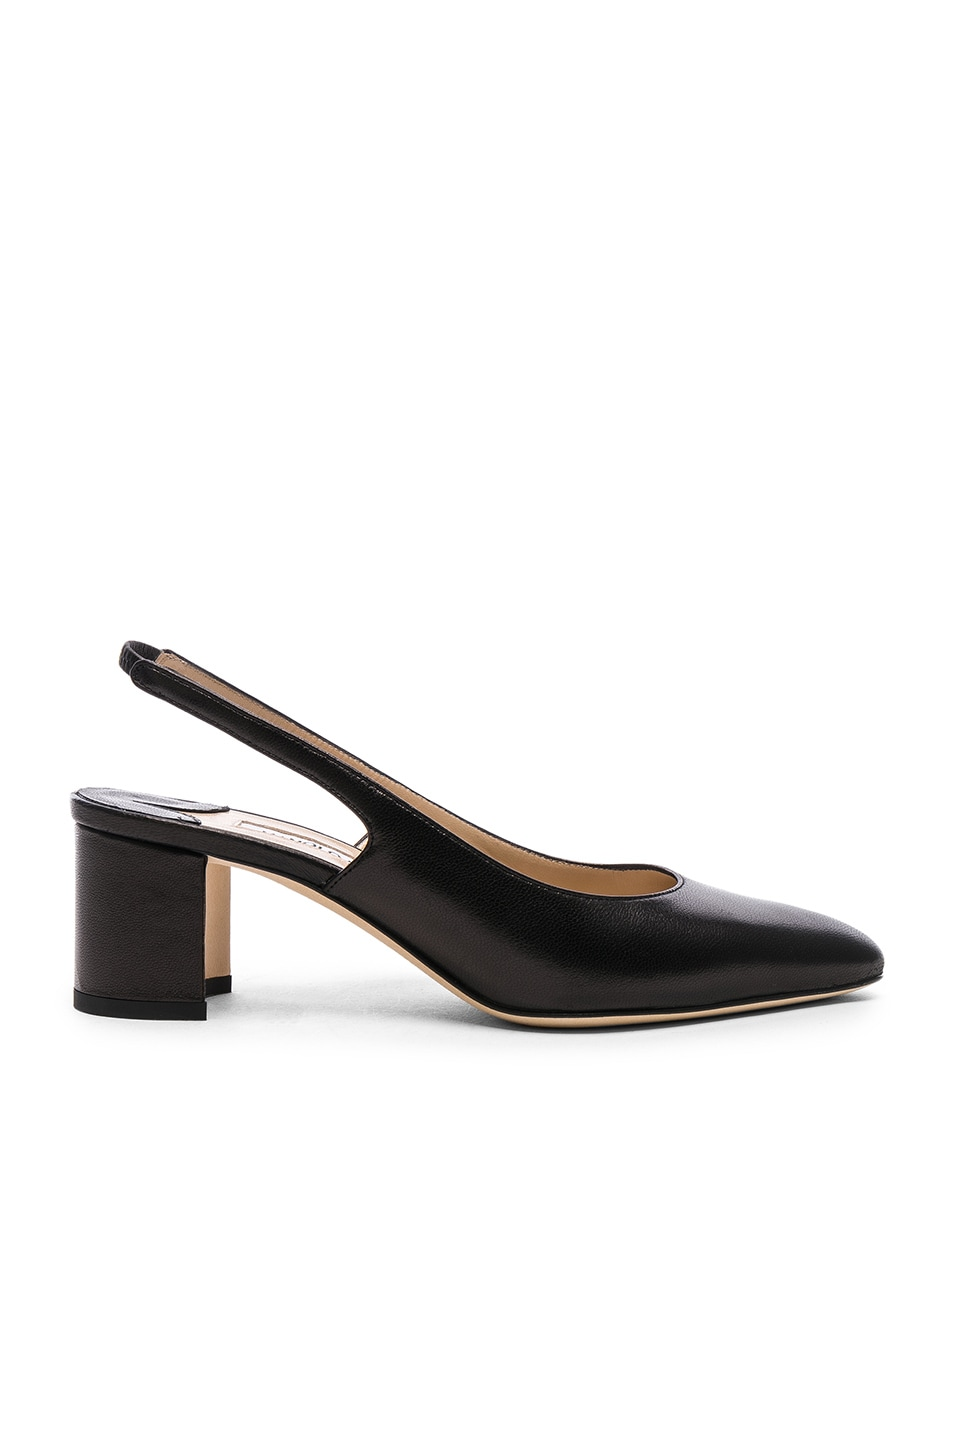 Image 1 of Manolo Blahnik Leather Allurasa 50 Heels in Black Nappa